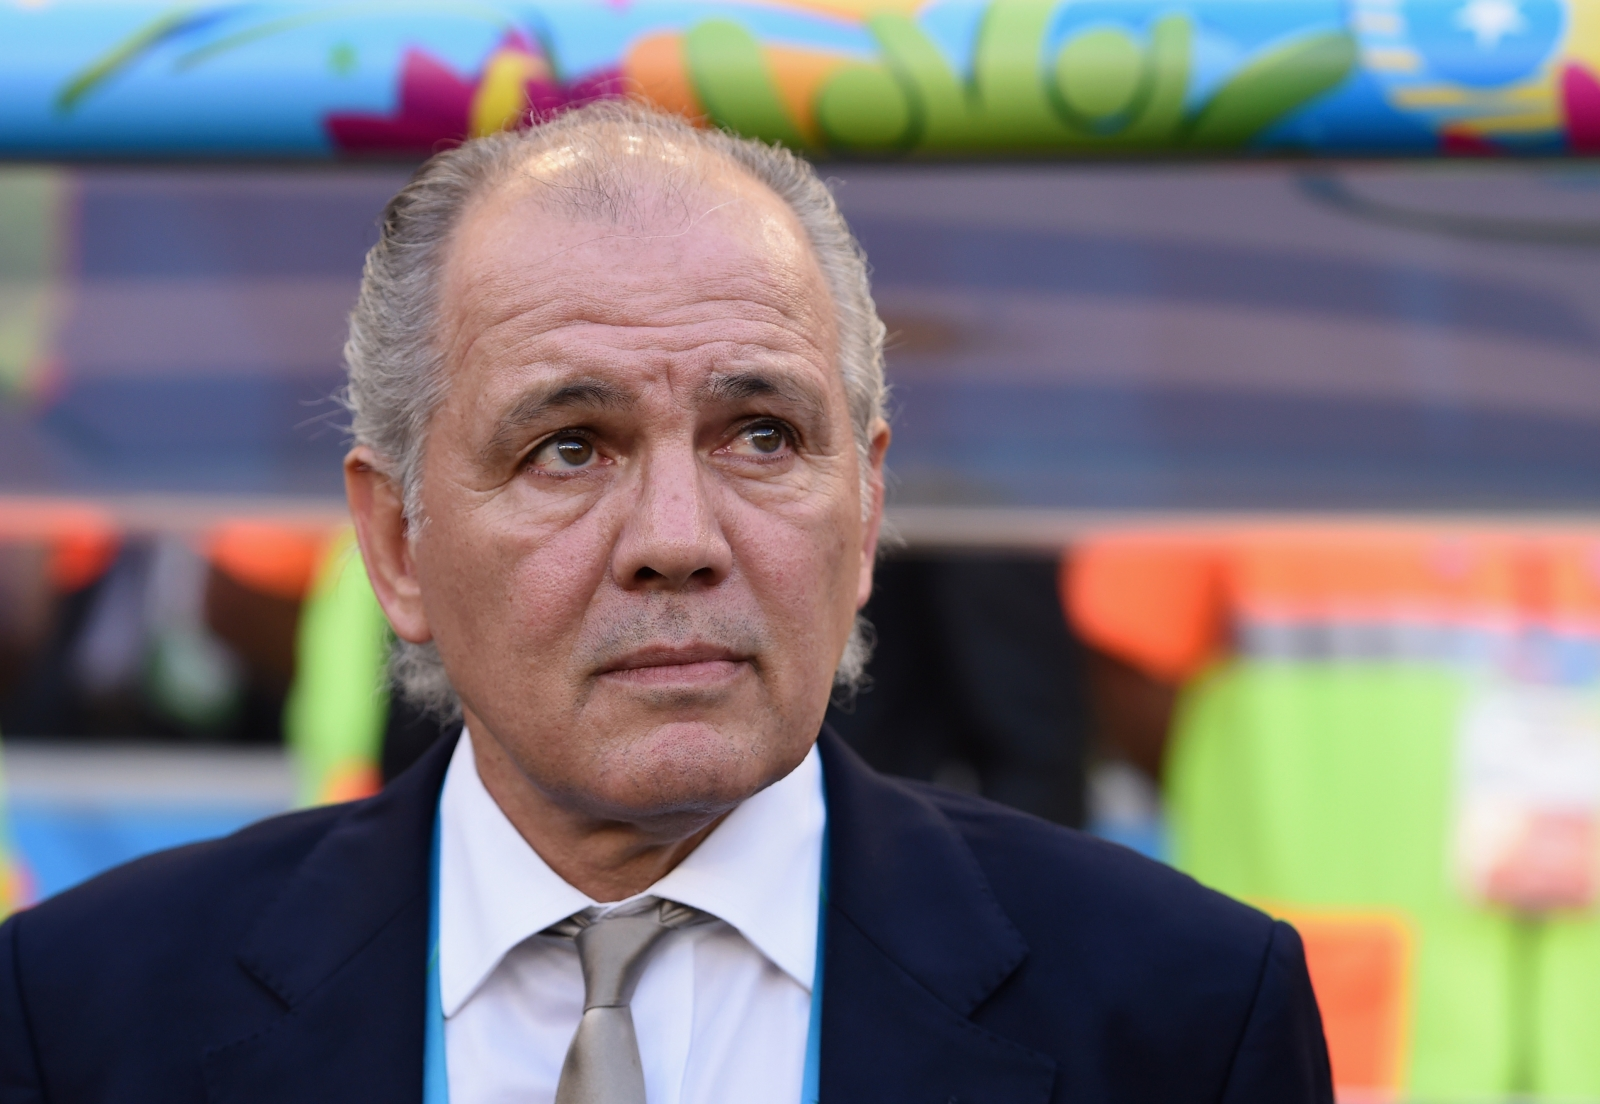 Alejandro Sabella  - 2018 Grey hair & alternative hair style.